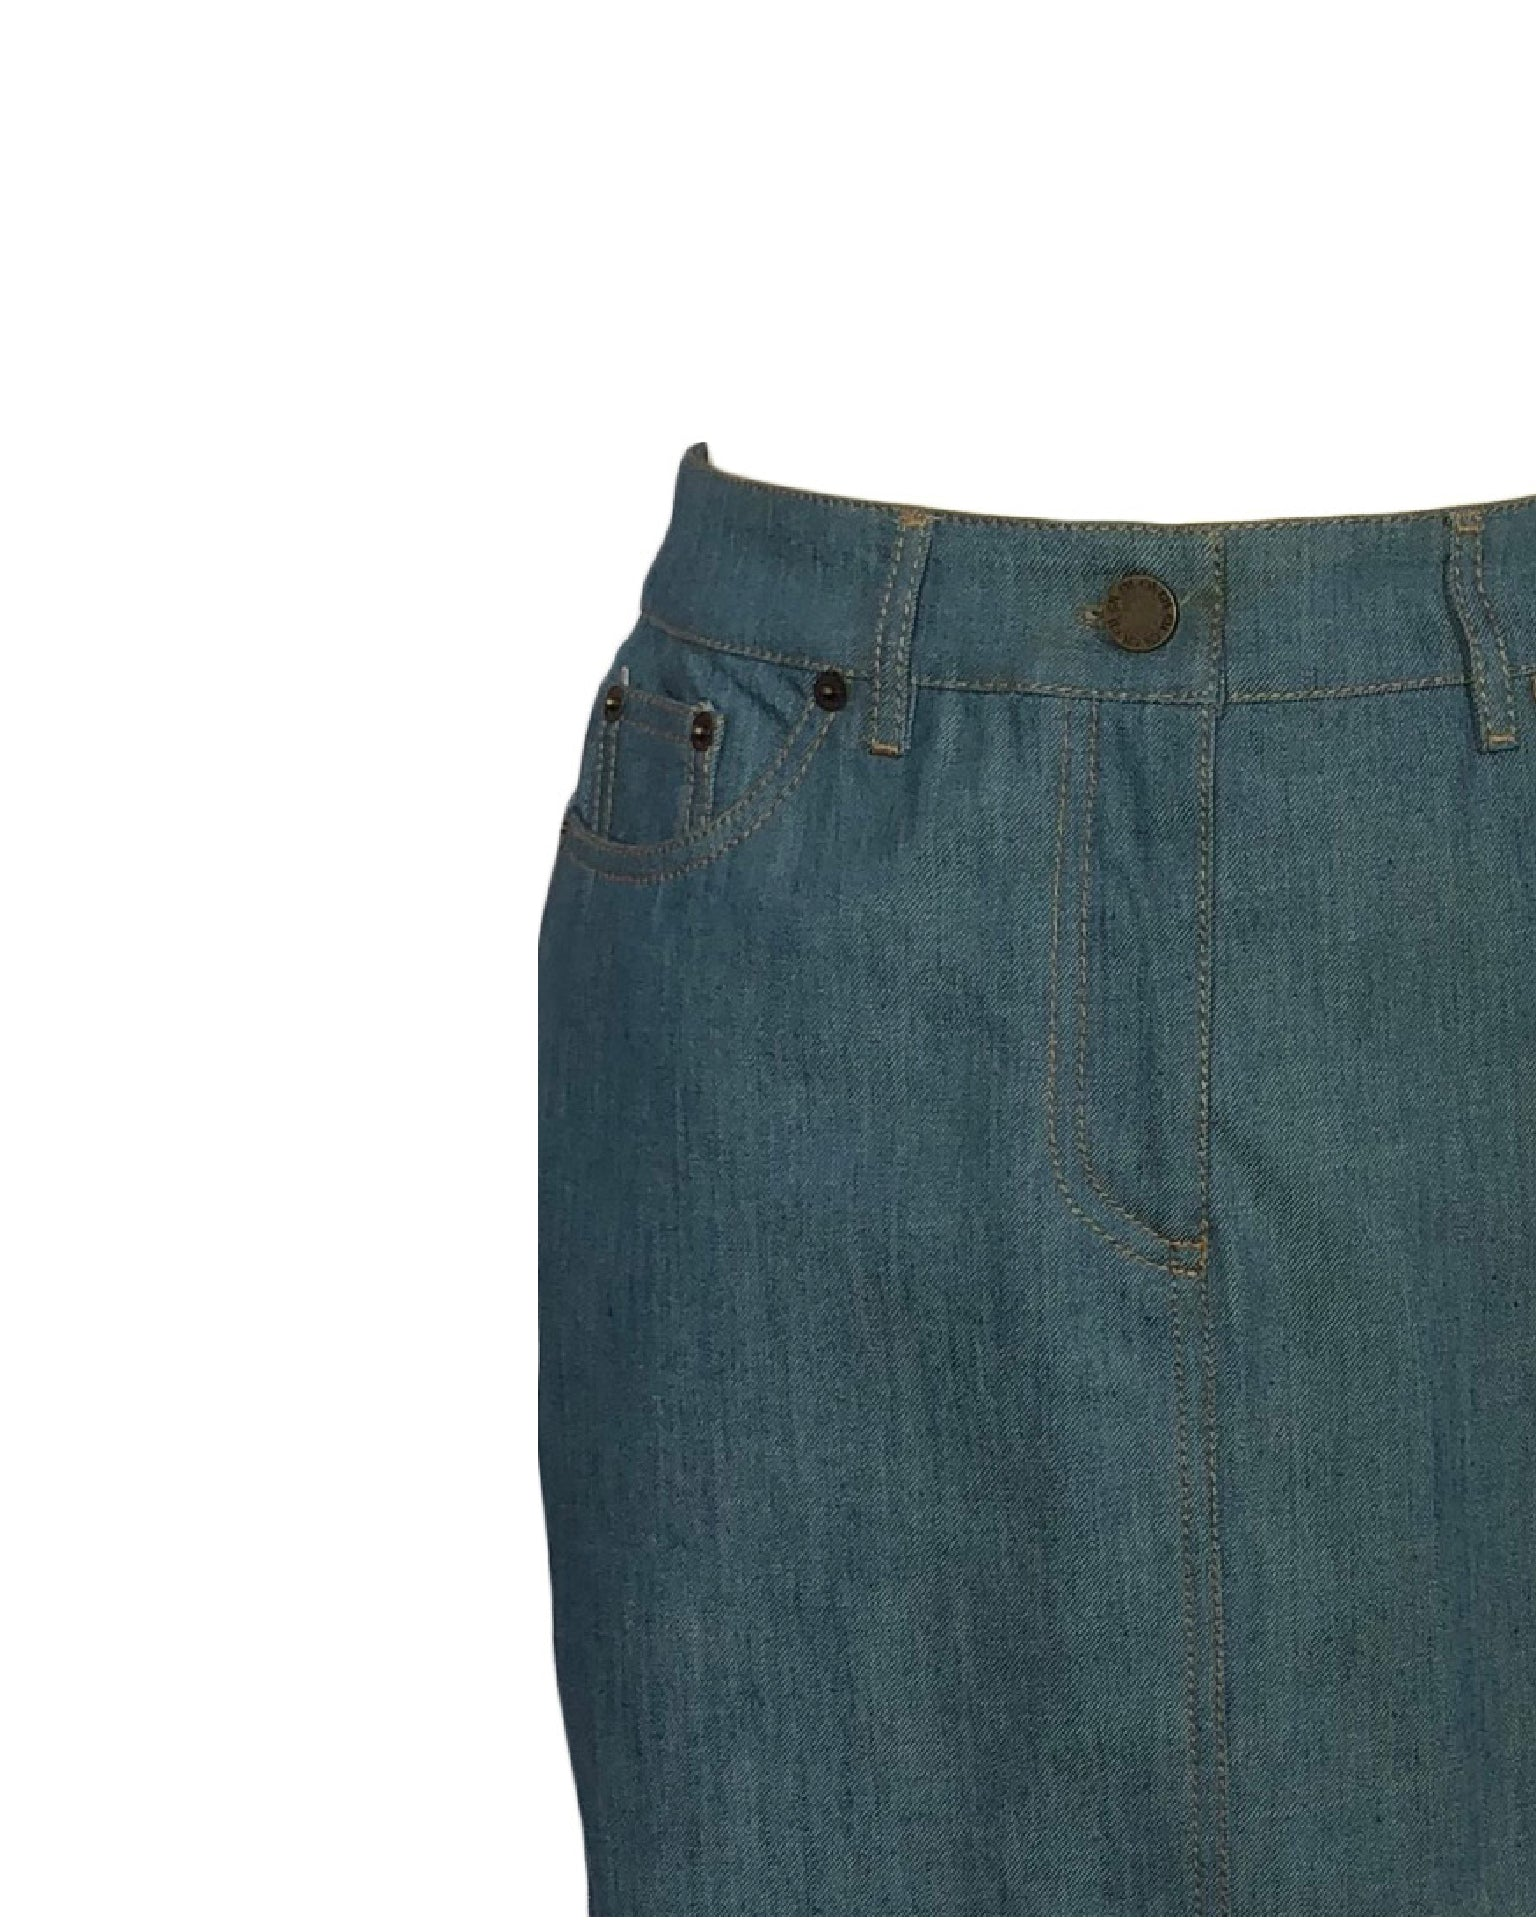 Carolina Herrera Denim Skirt Size 34 (EU)